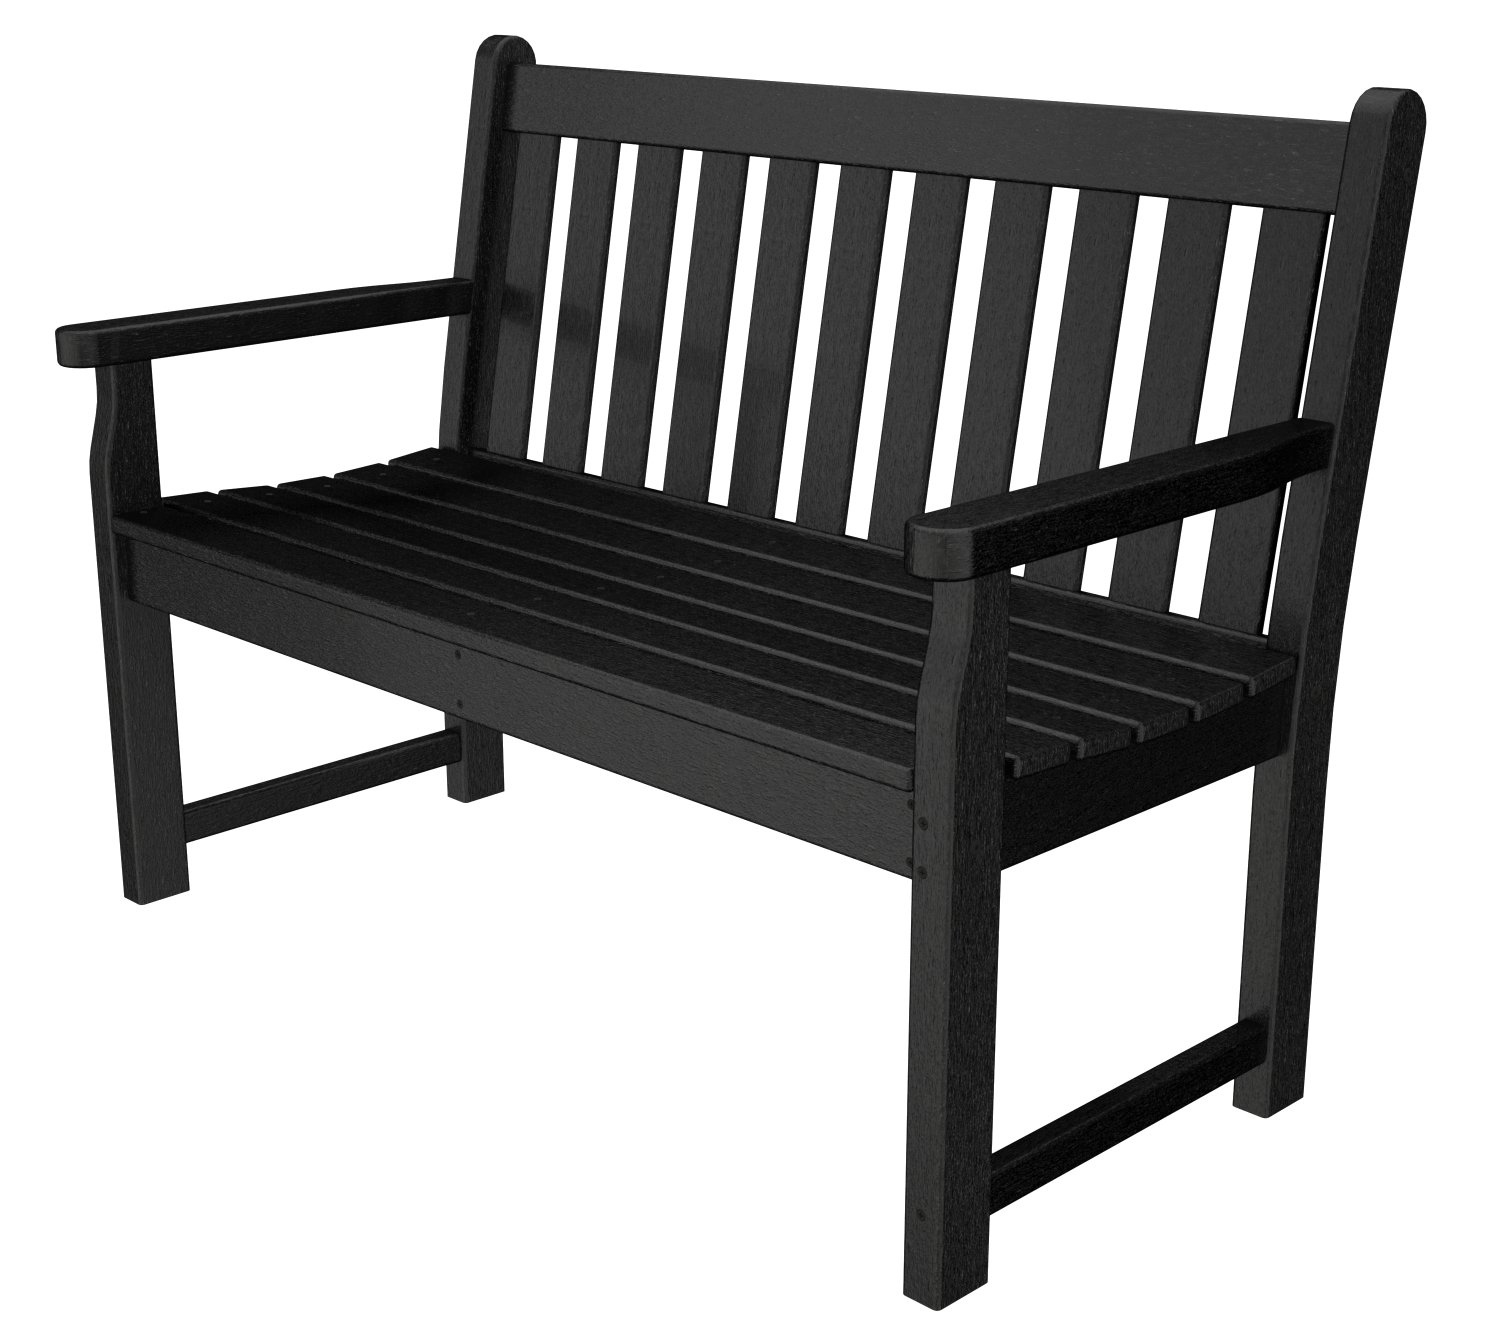 Poly Wood TGB48BL Traditional Garden 48 in. Bench - Black